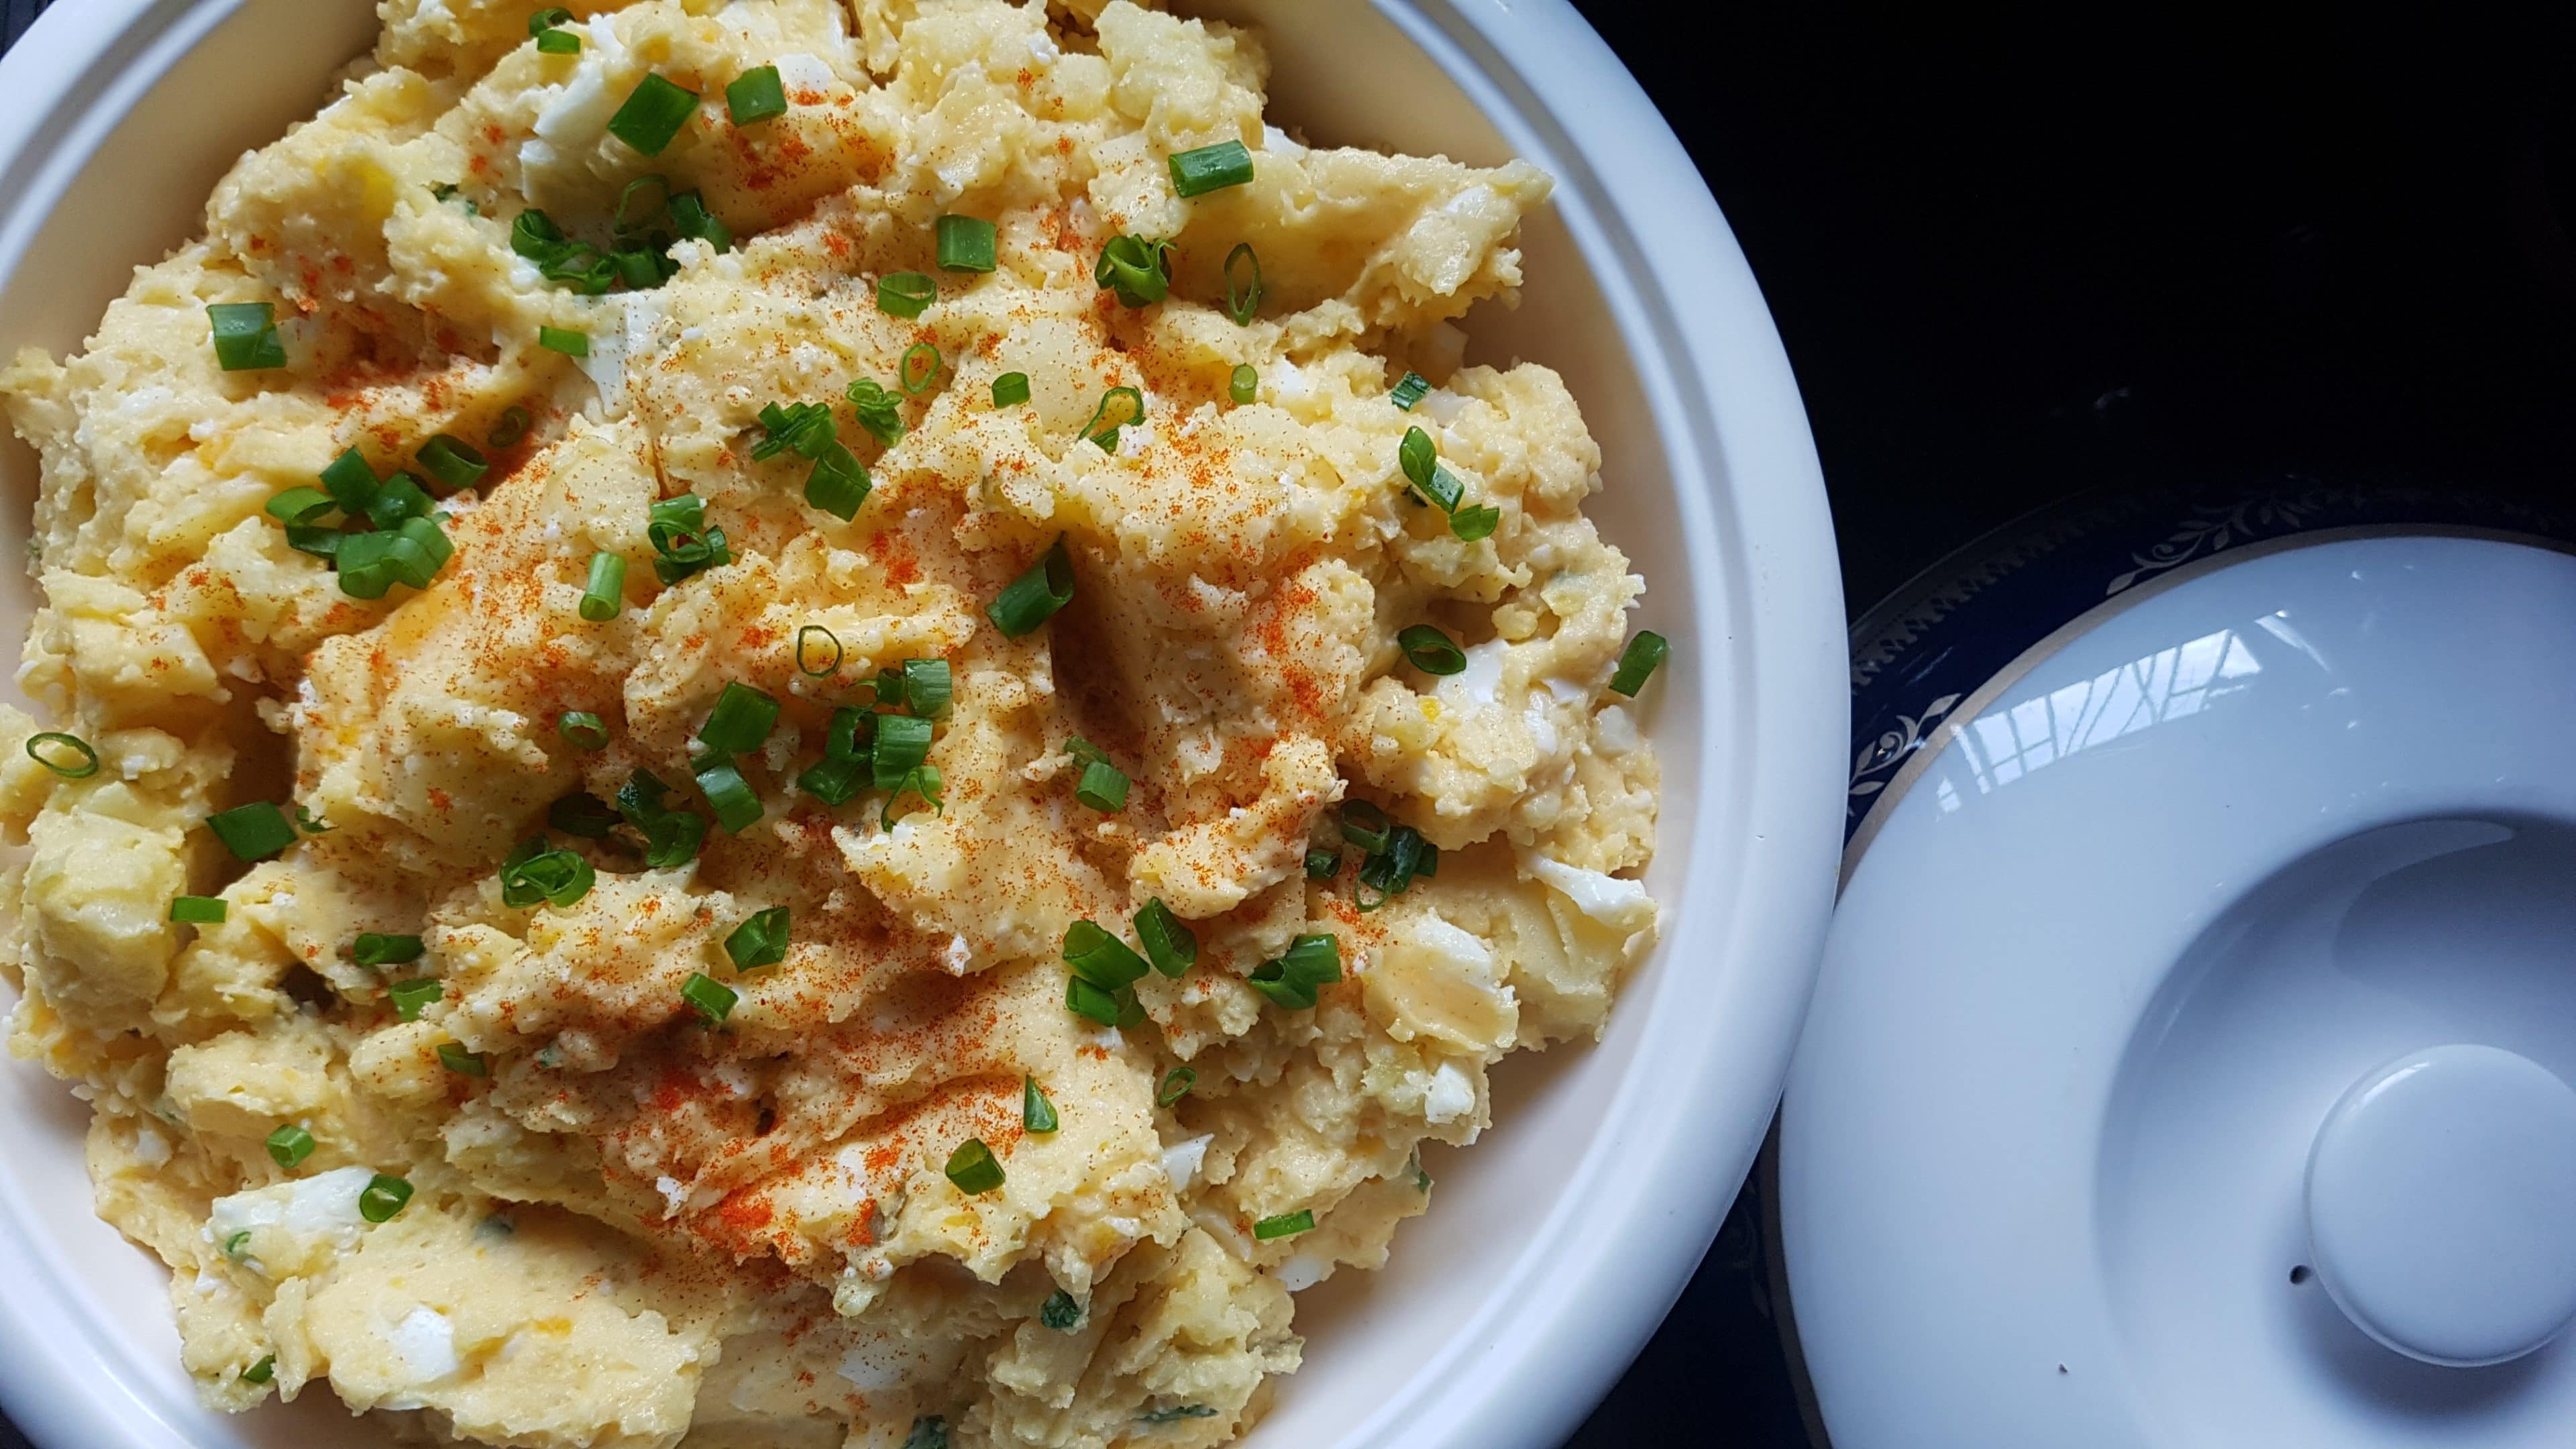 Weekend Cooking: Prejean's Potato Salad